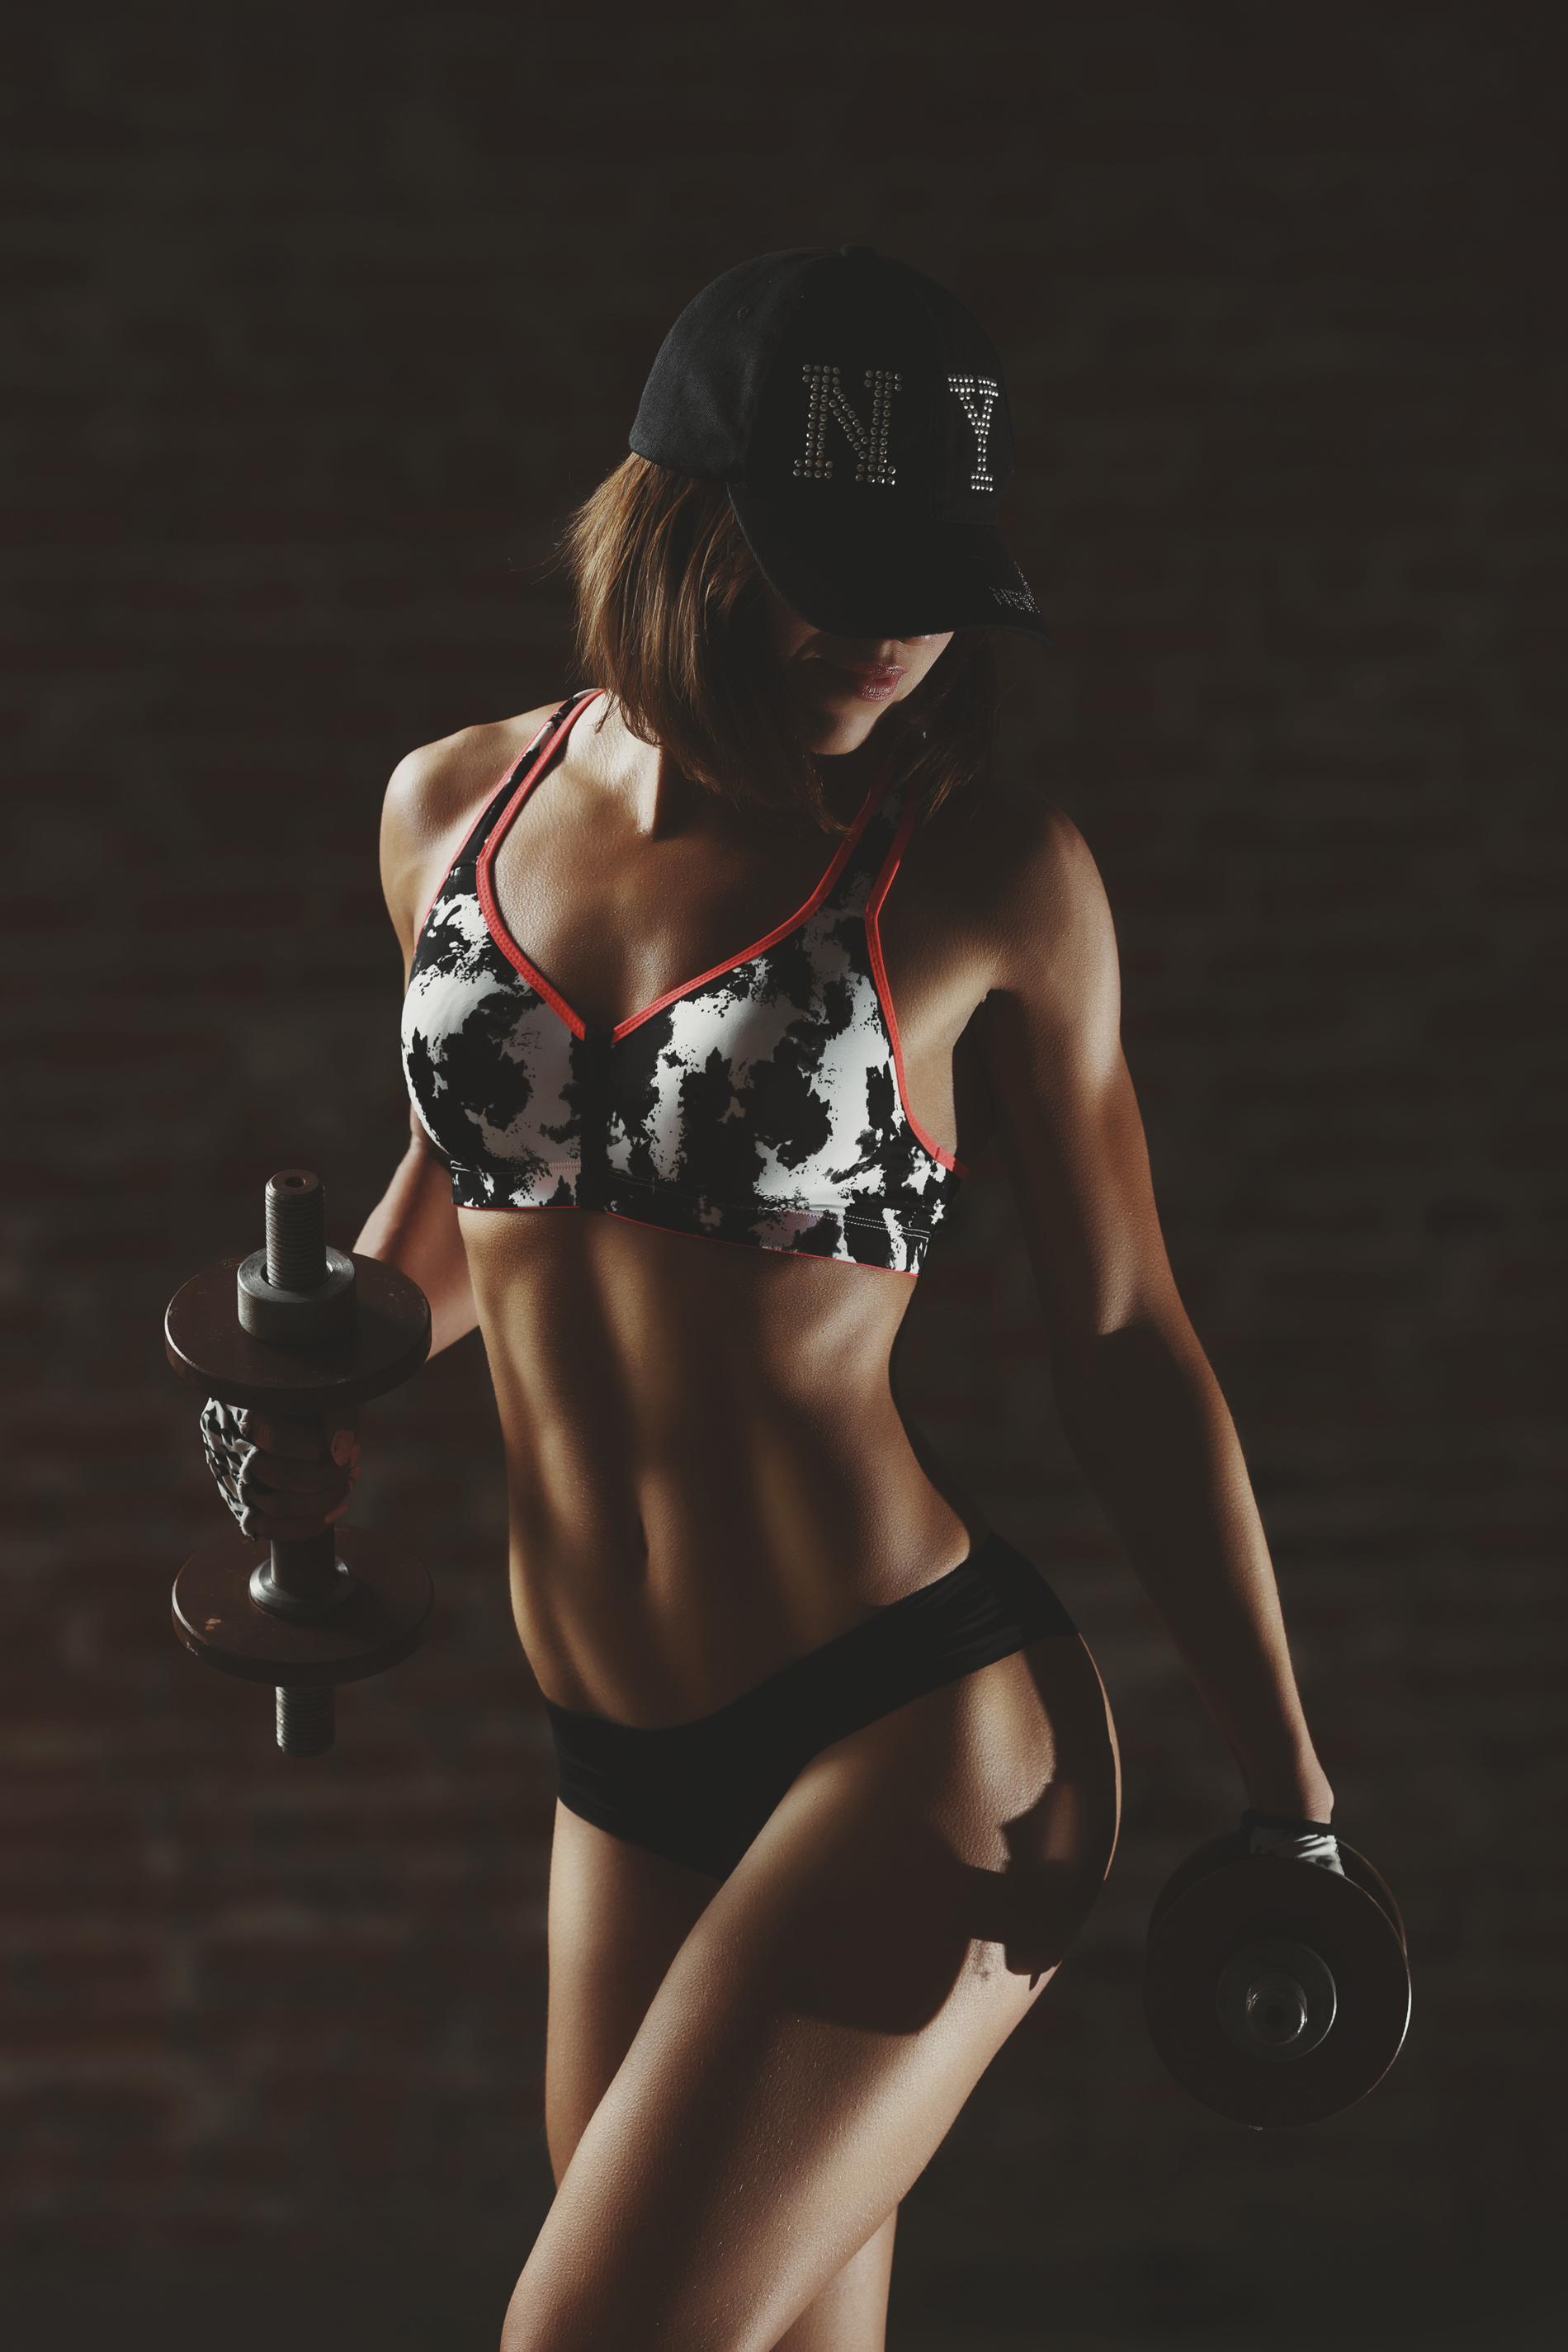 Wearing a baseball cap muscle fitness beauties 52907